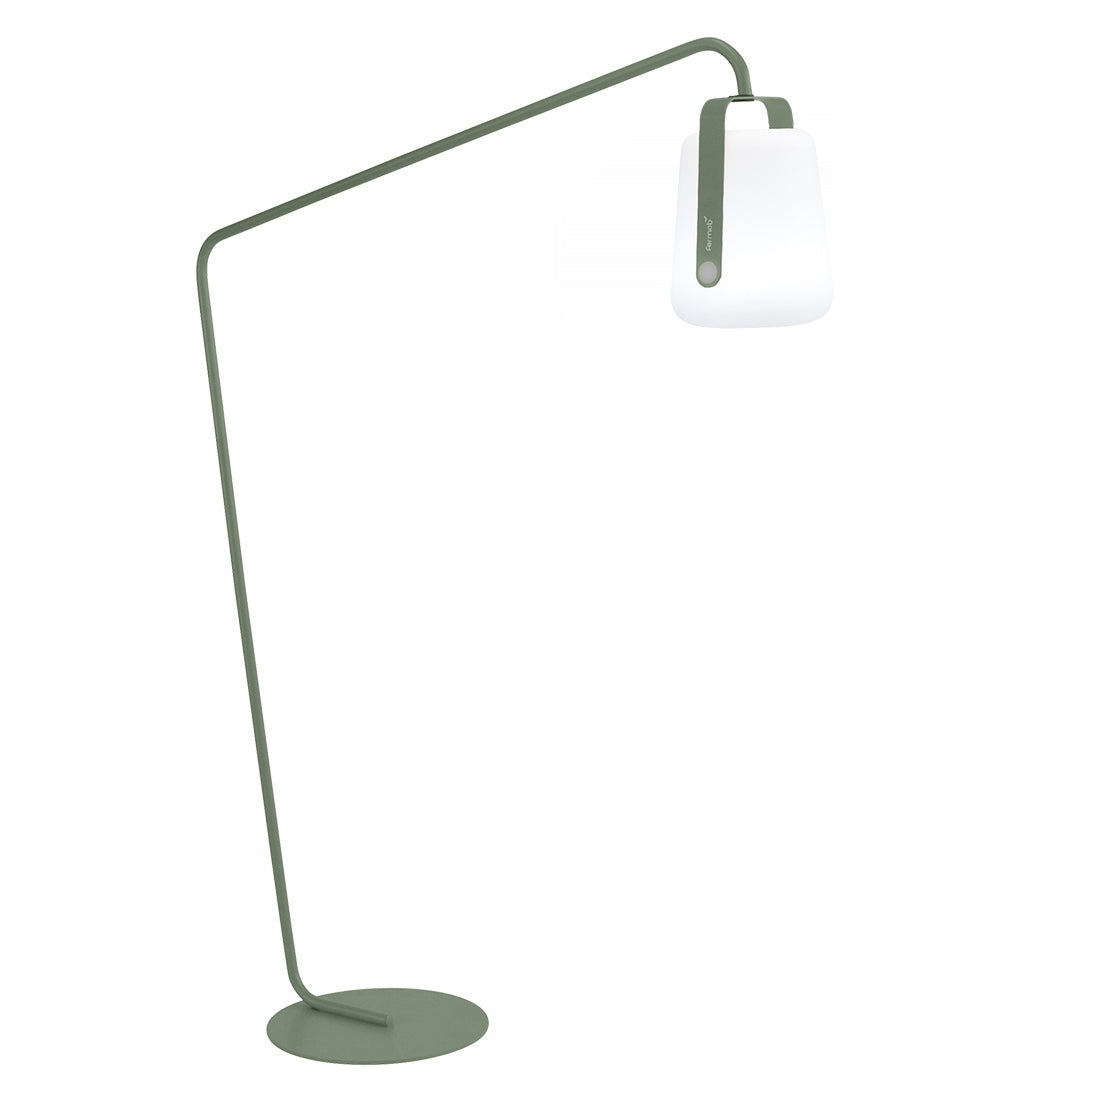 FERMOB | Balad | Offset Stand | 6 colour options (Lamp not included) | Made for you - Available in 4-6 weeks